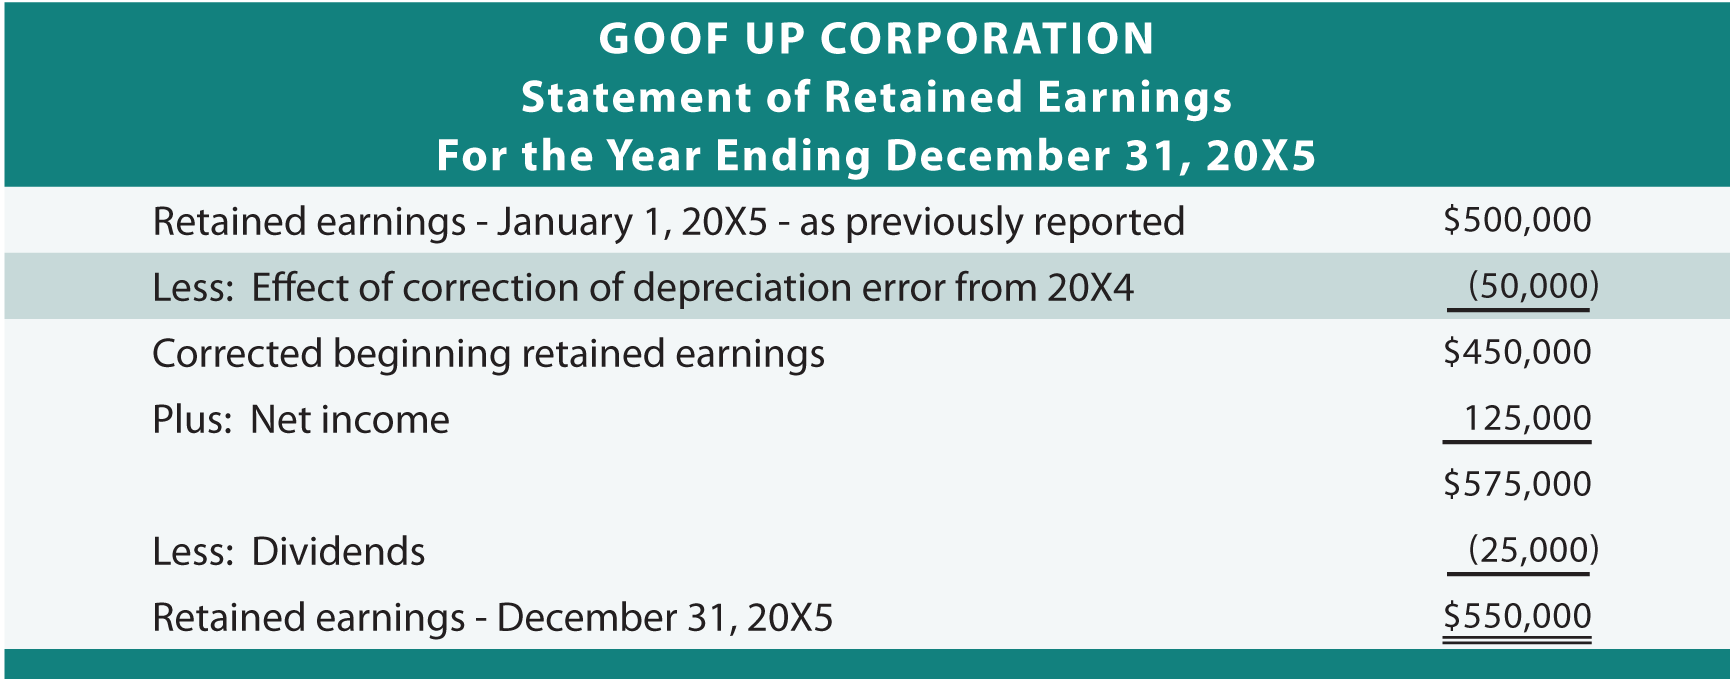 Correction On Statement of Retained Earnings